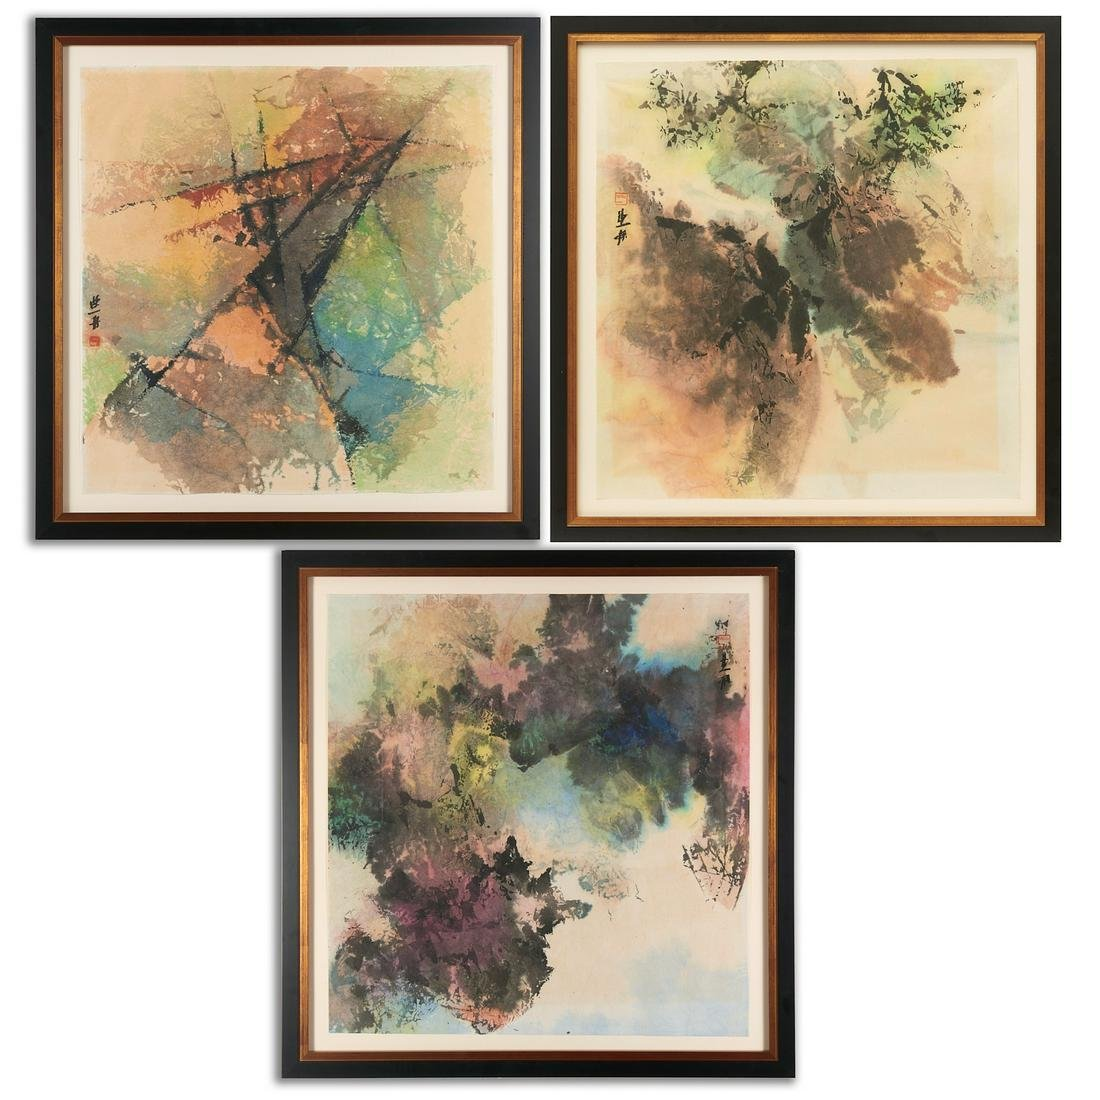 Chinese Modern School, triptych painting